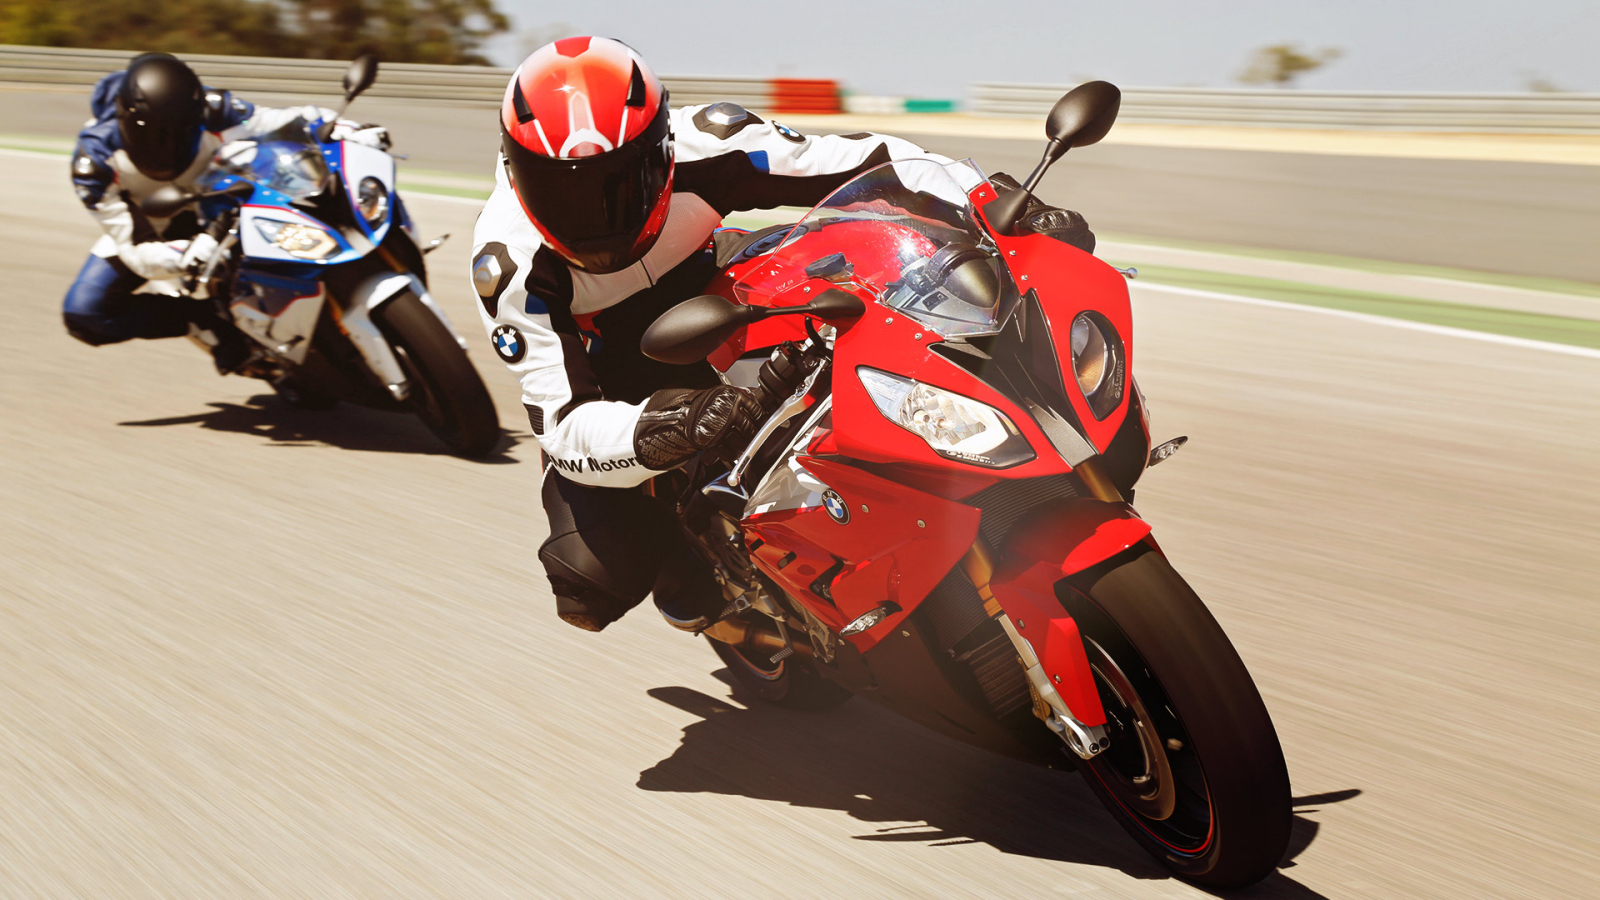 2015 2018 Bmw S 1000 Rr Pictures Photos Wallpapers Top Speed